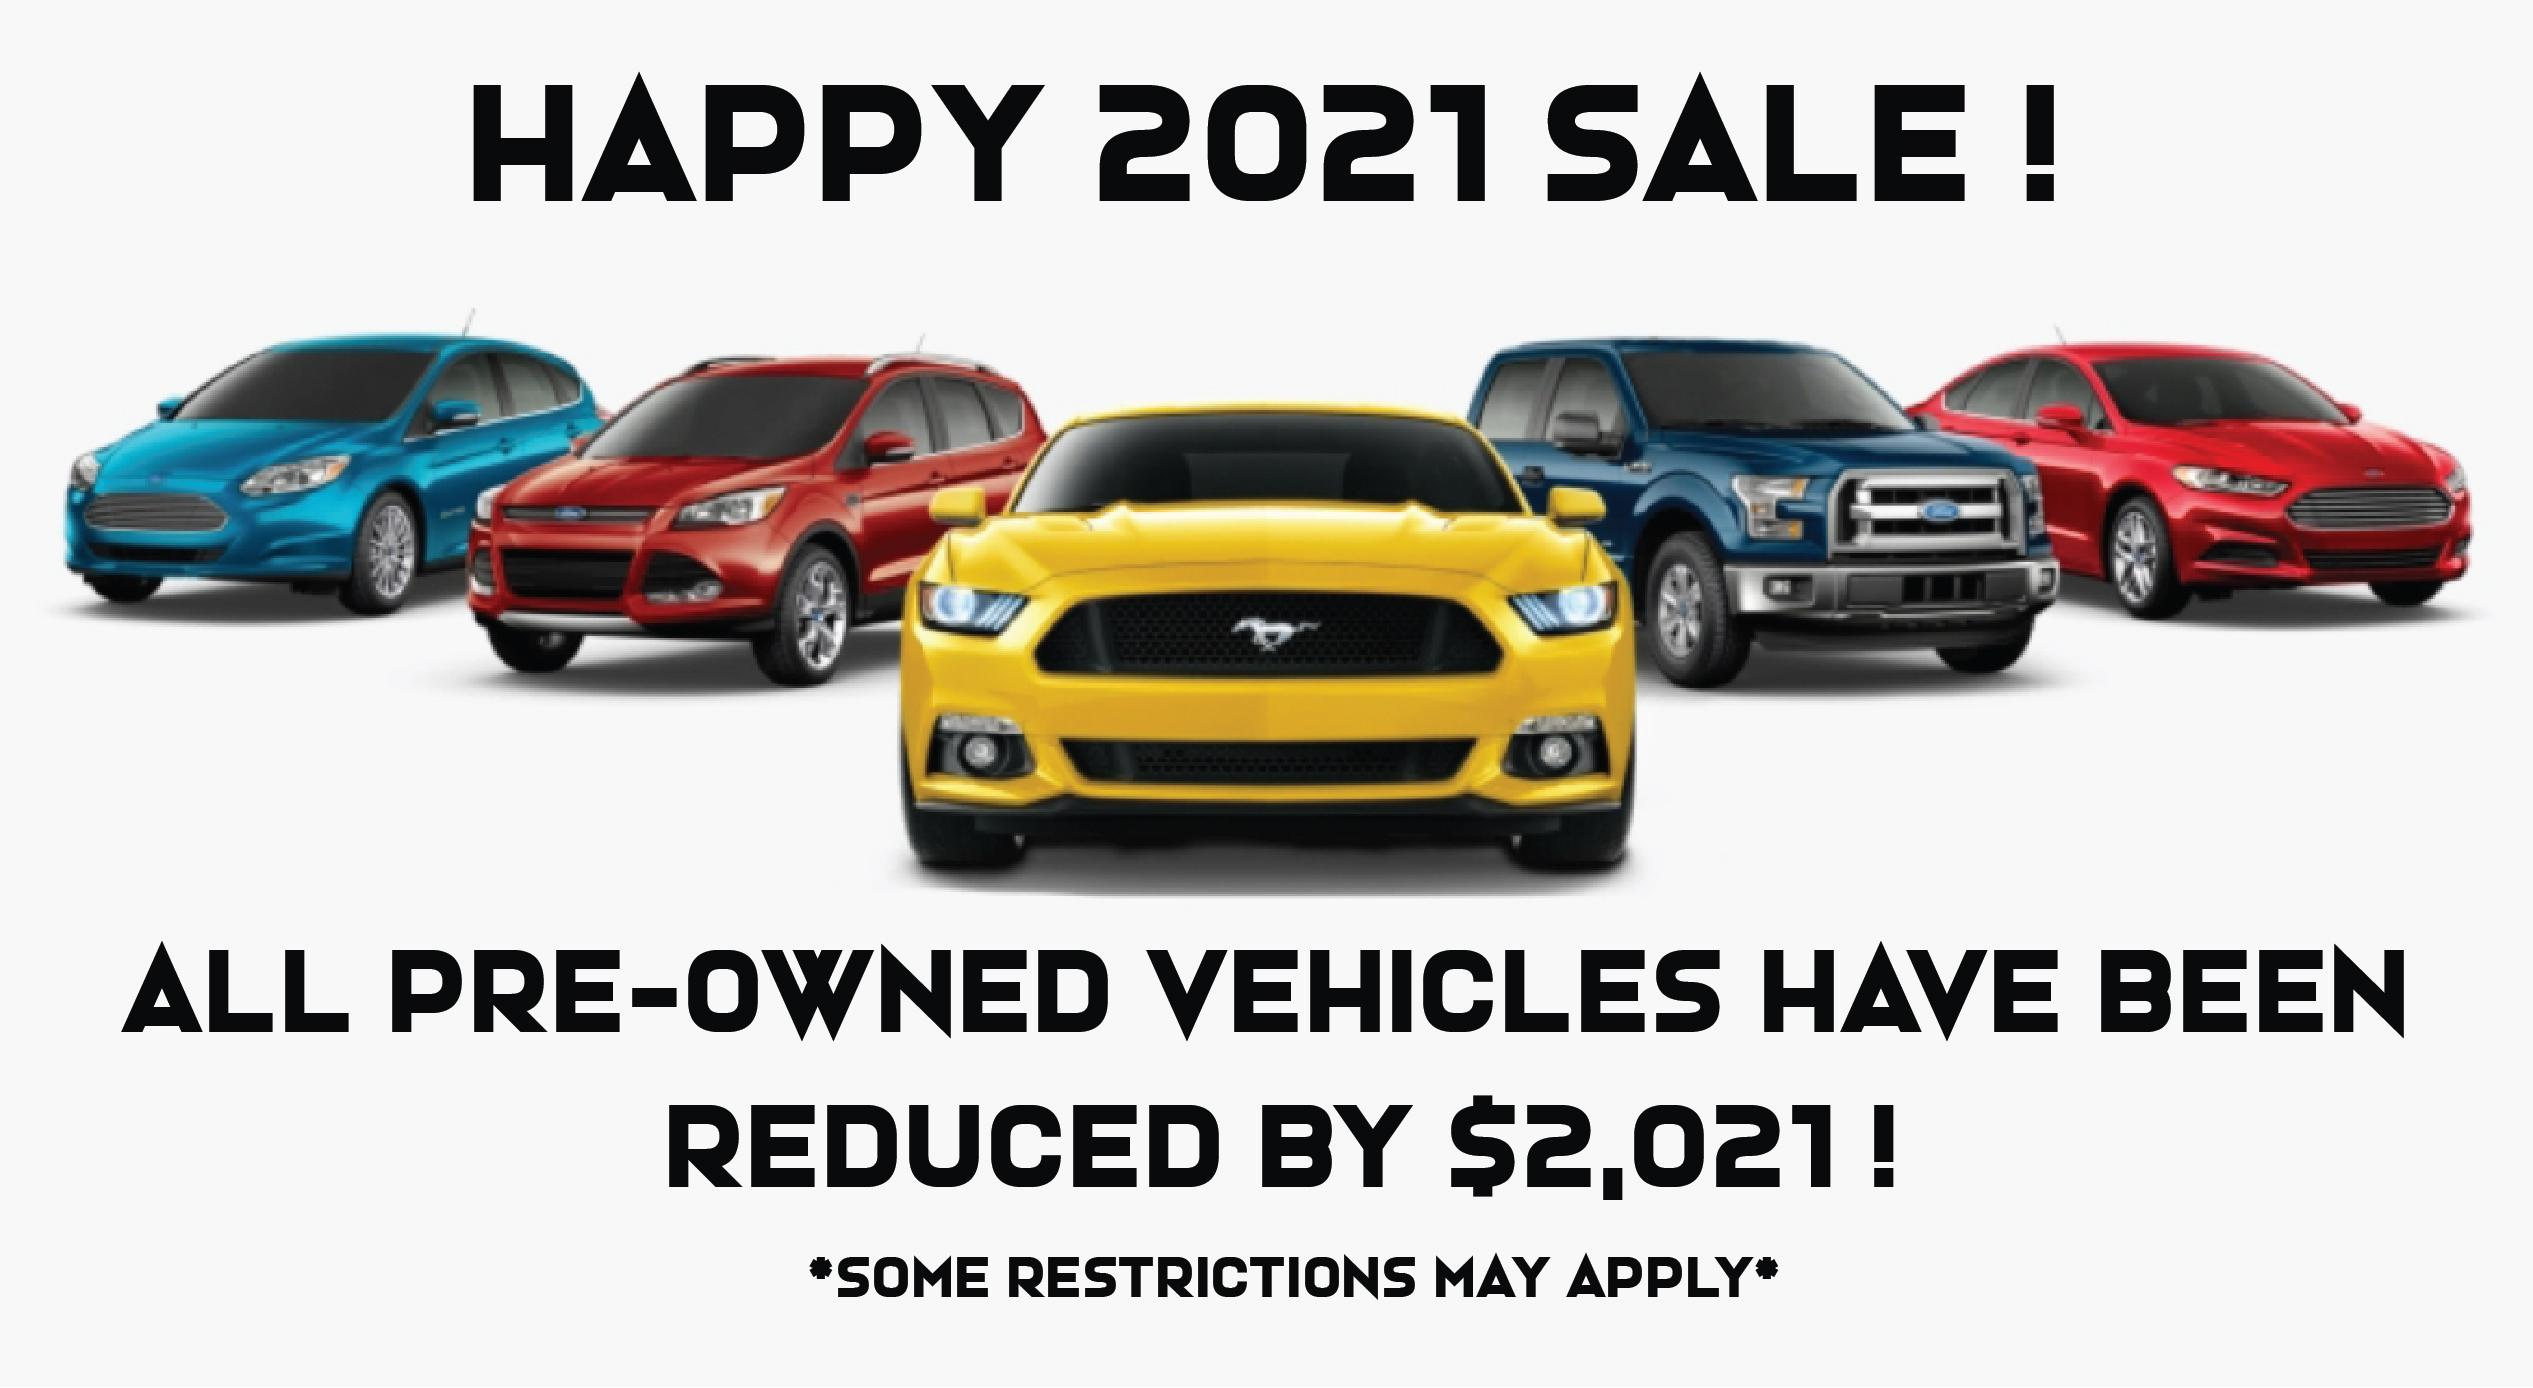 Happy 2021 Used Vehicle Sale